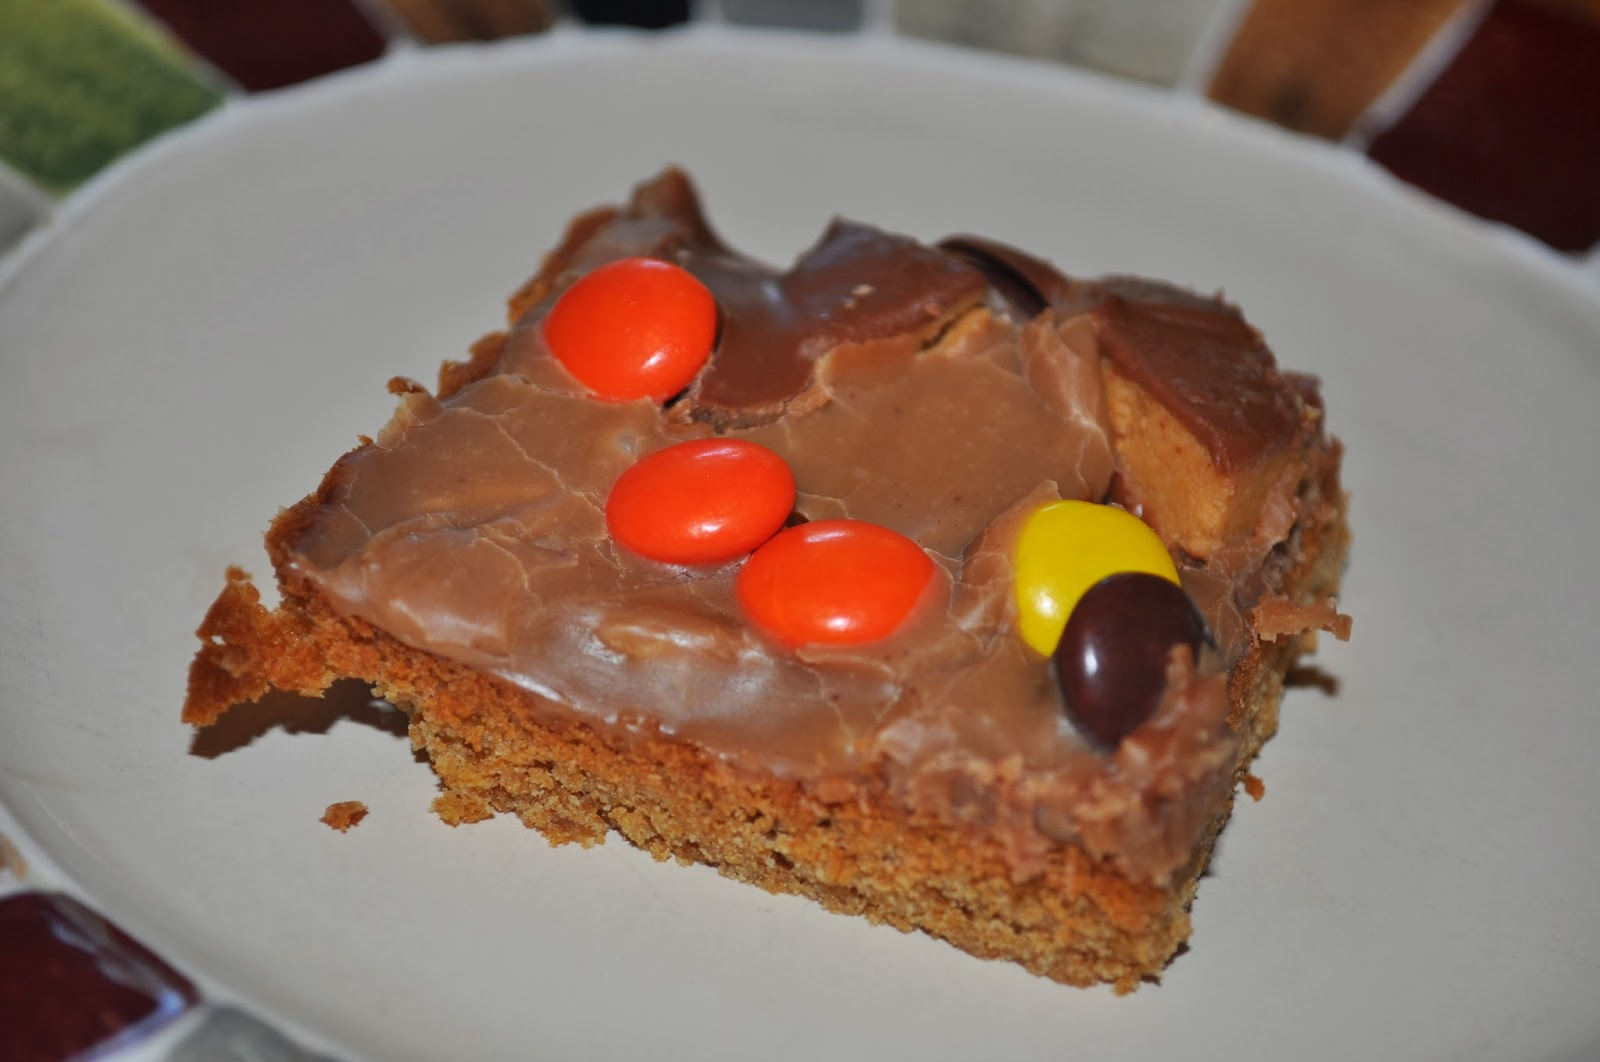 beth 39 s favorite recipes peanut butter bars for jelly roll pan. Black Bedroom Furniture Sets. Home Design Ideas